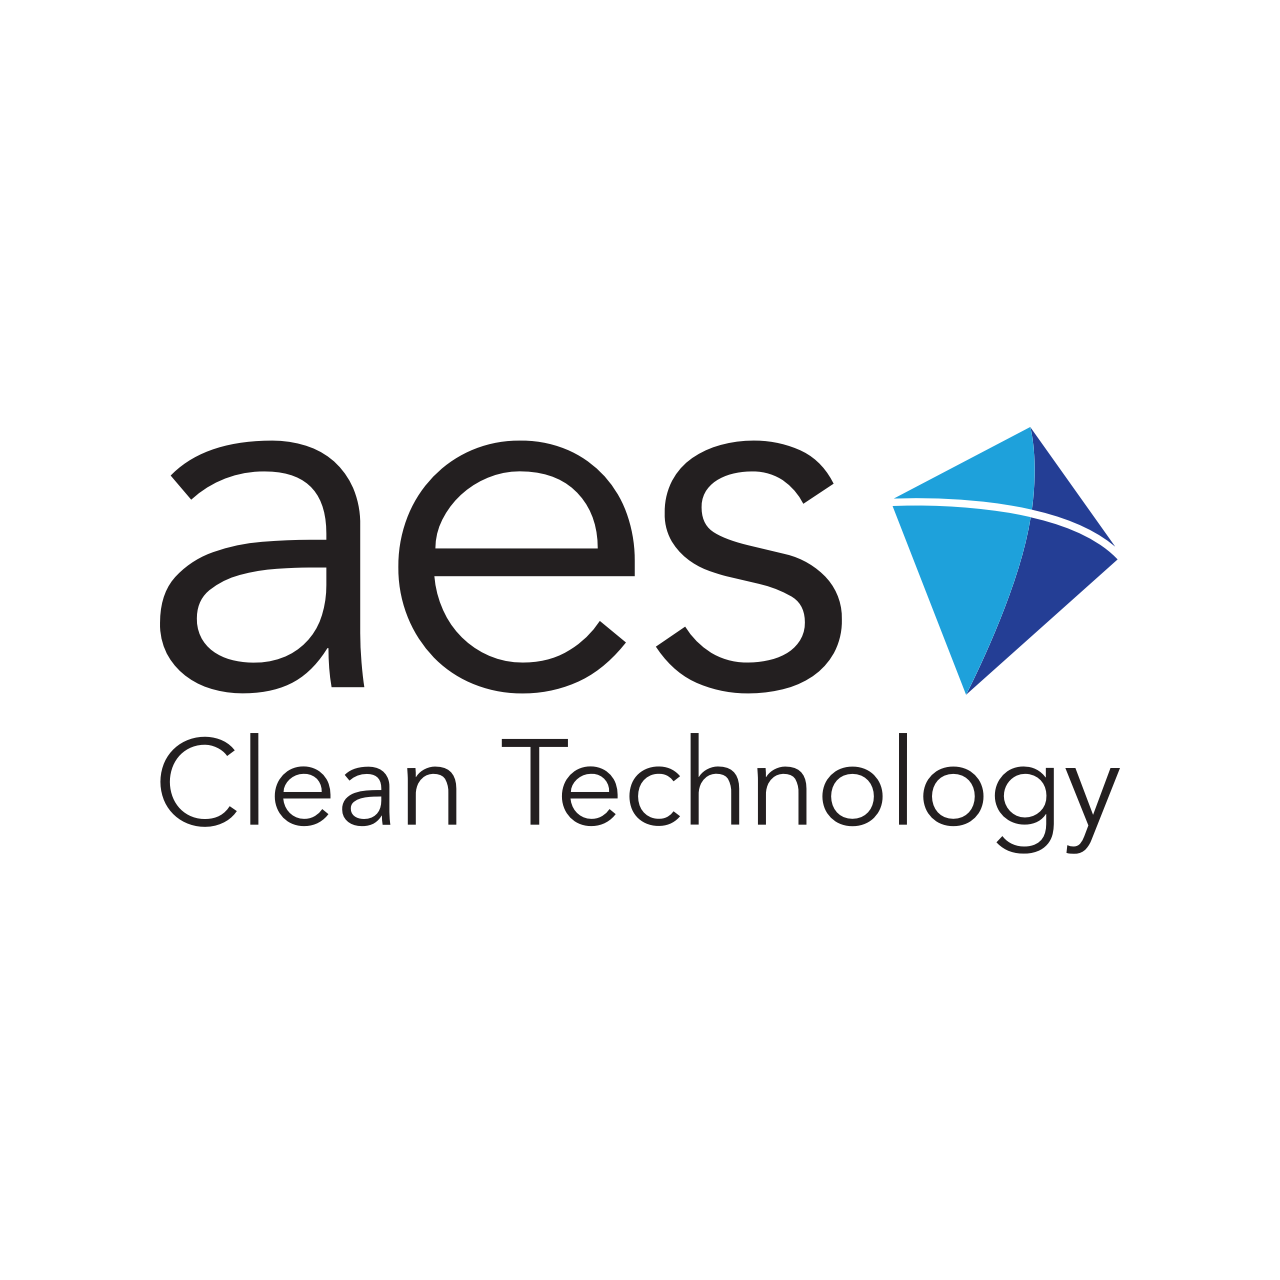 aes Clean Technology